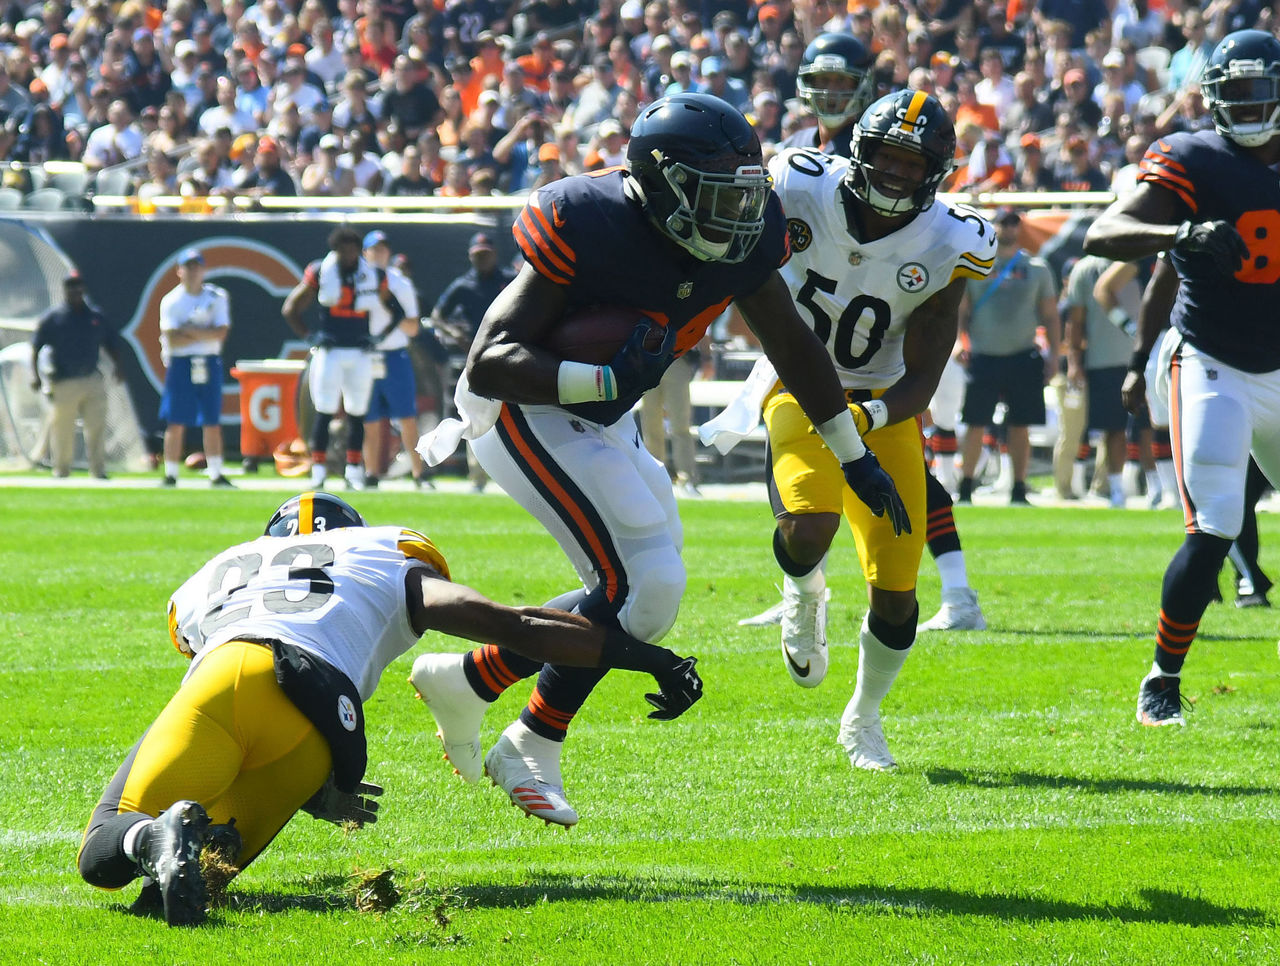 Cropped 2017 09 24t175943z 801047430 nocid rtrmadp 3 nfl pittsburgh steelers at chicago bears